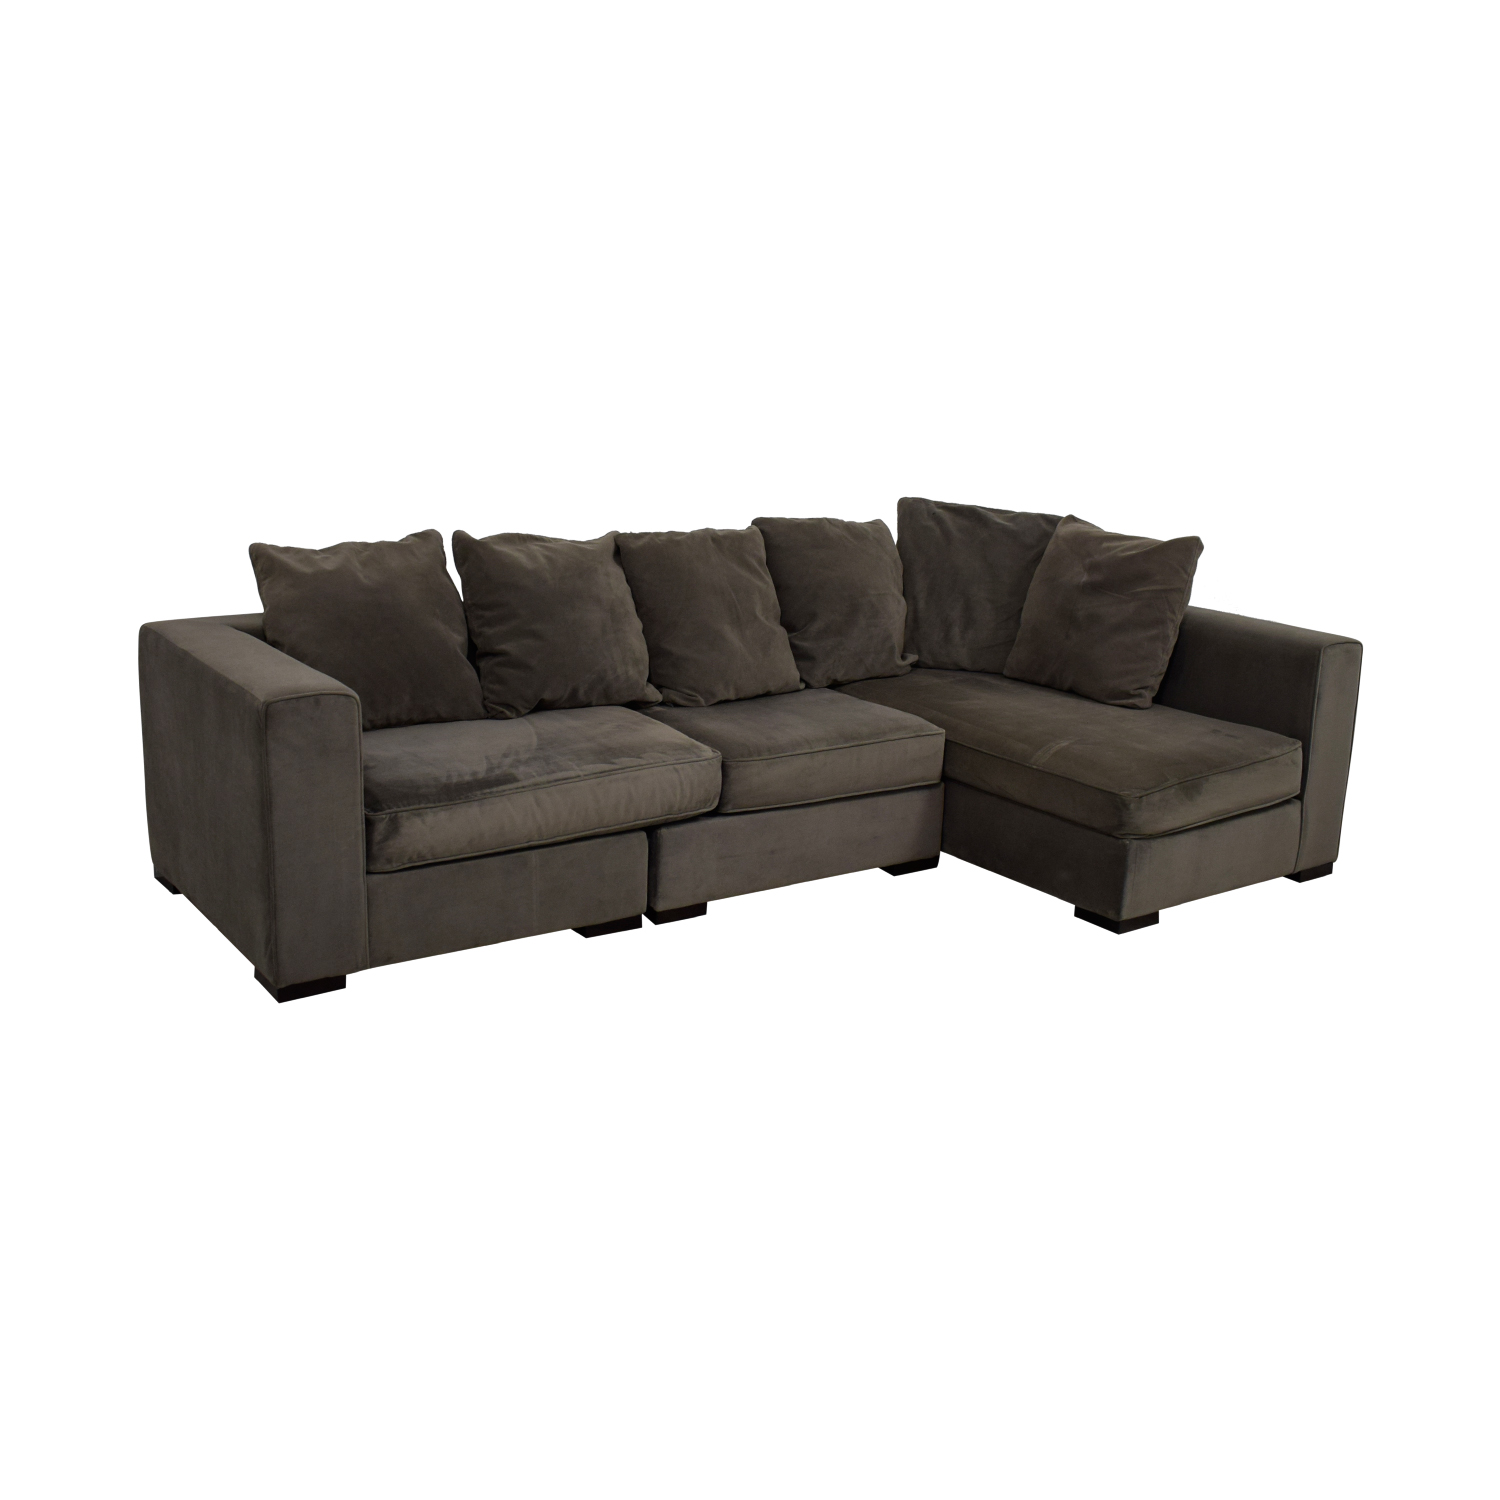 60 Off West Elm West Elm Grey L Shaped Sectional Sofas